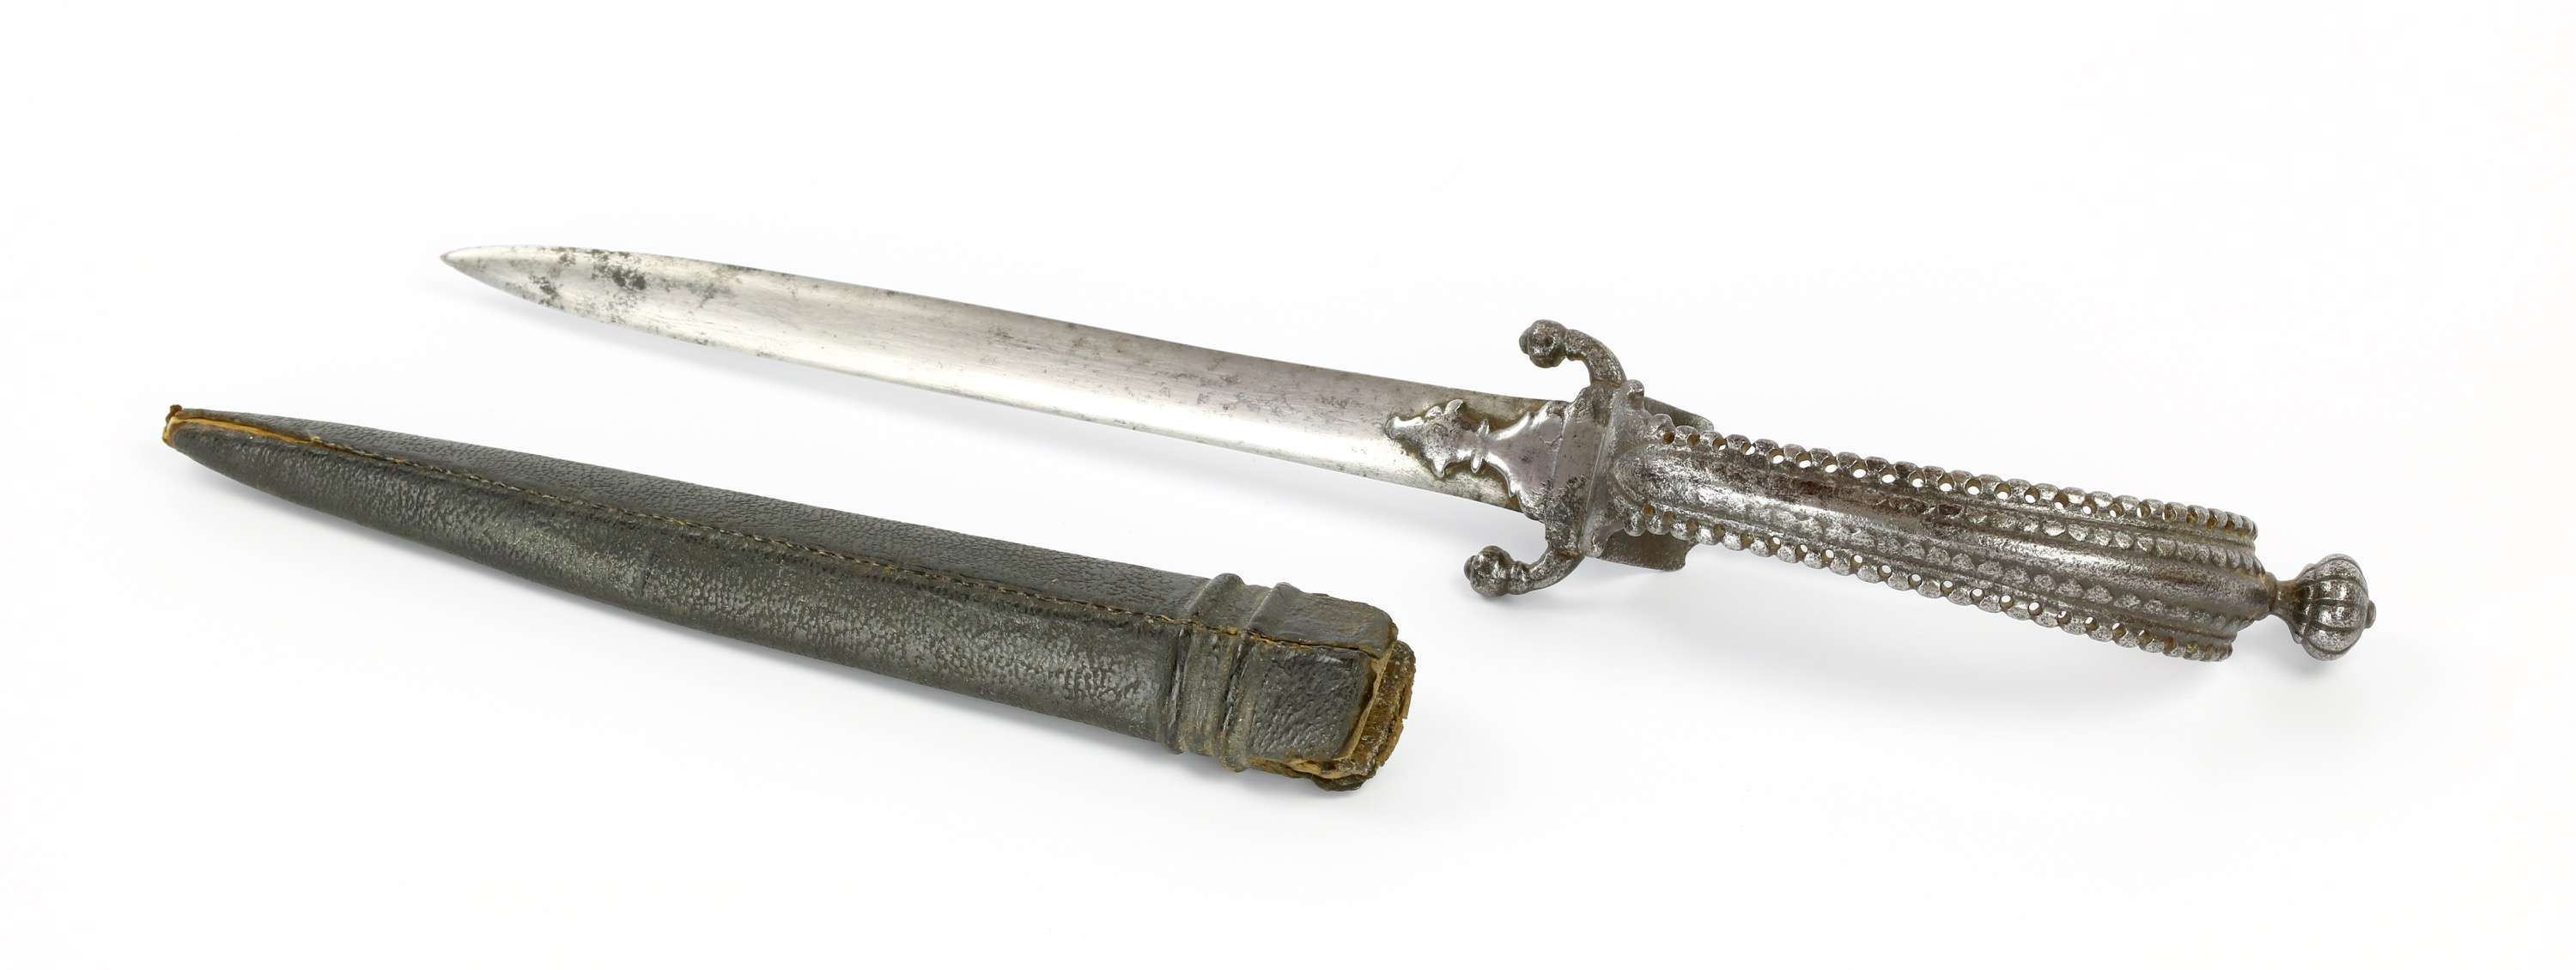 South Indian loop hilted dagger, straight bichwa or bichuwa